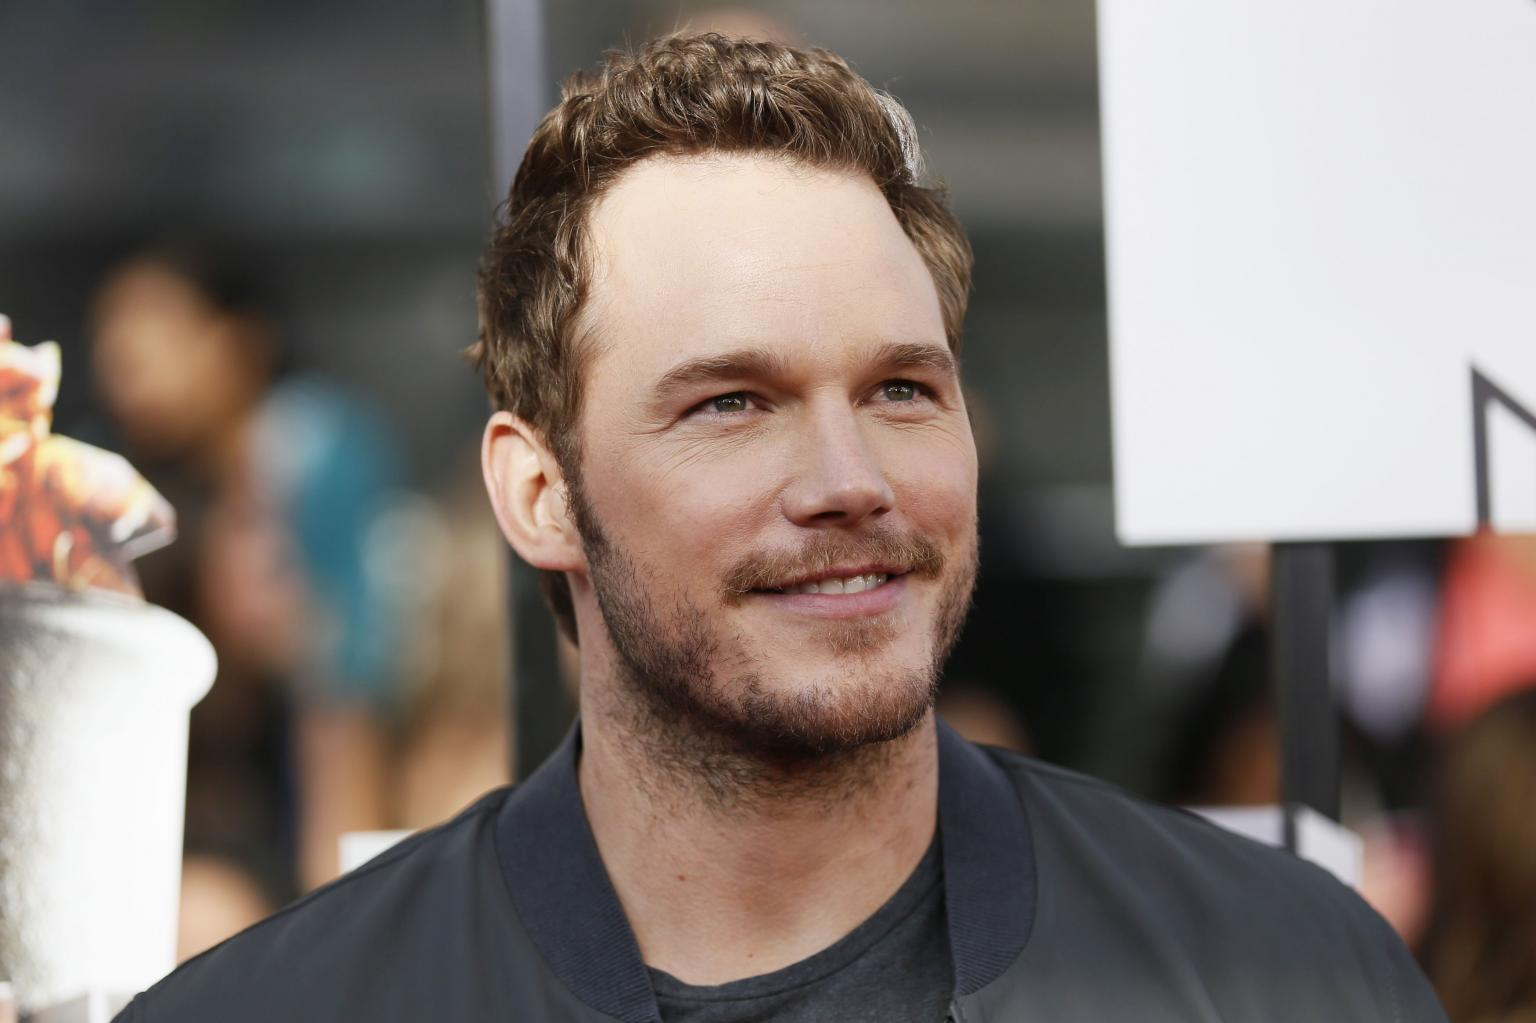 Chris Pratt Reveals He Got In Trouble With NBC For Going